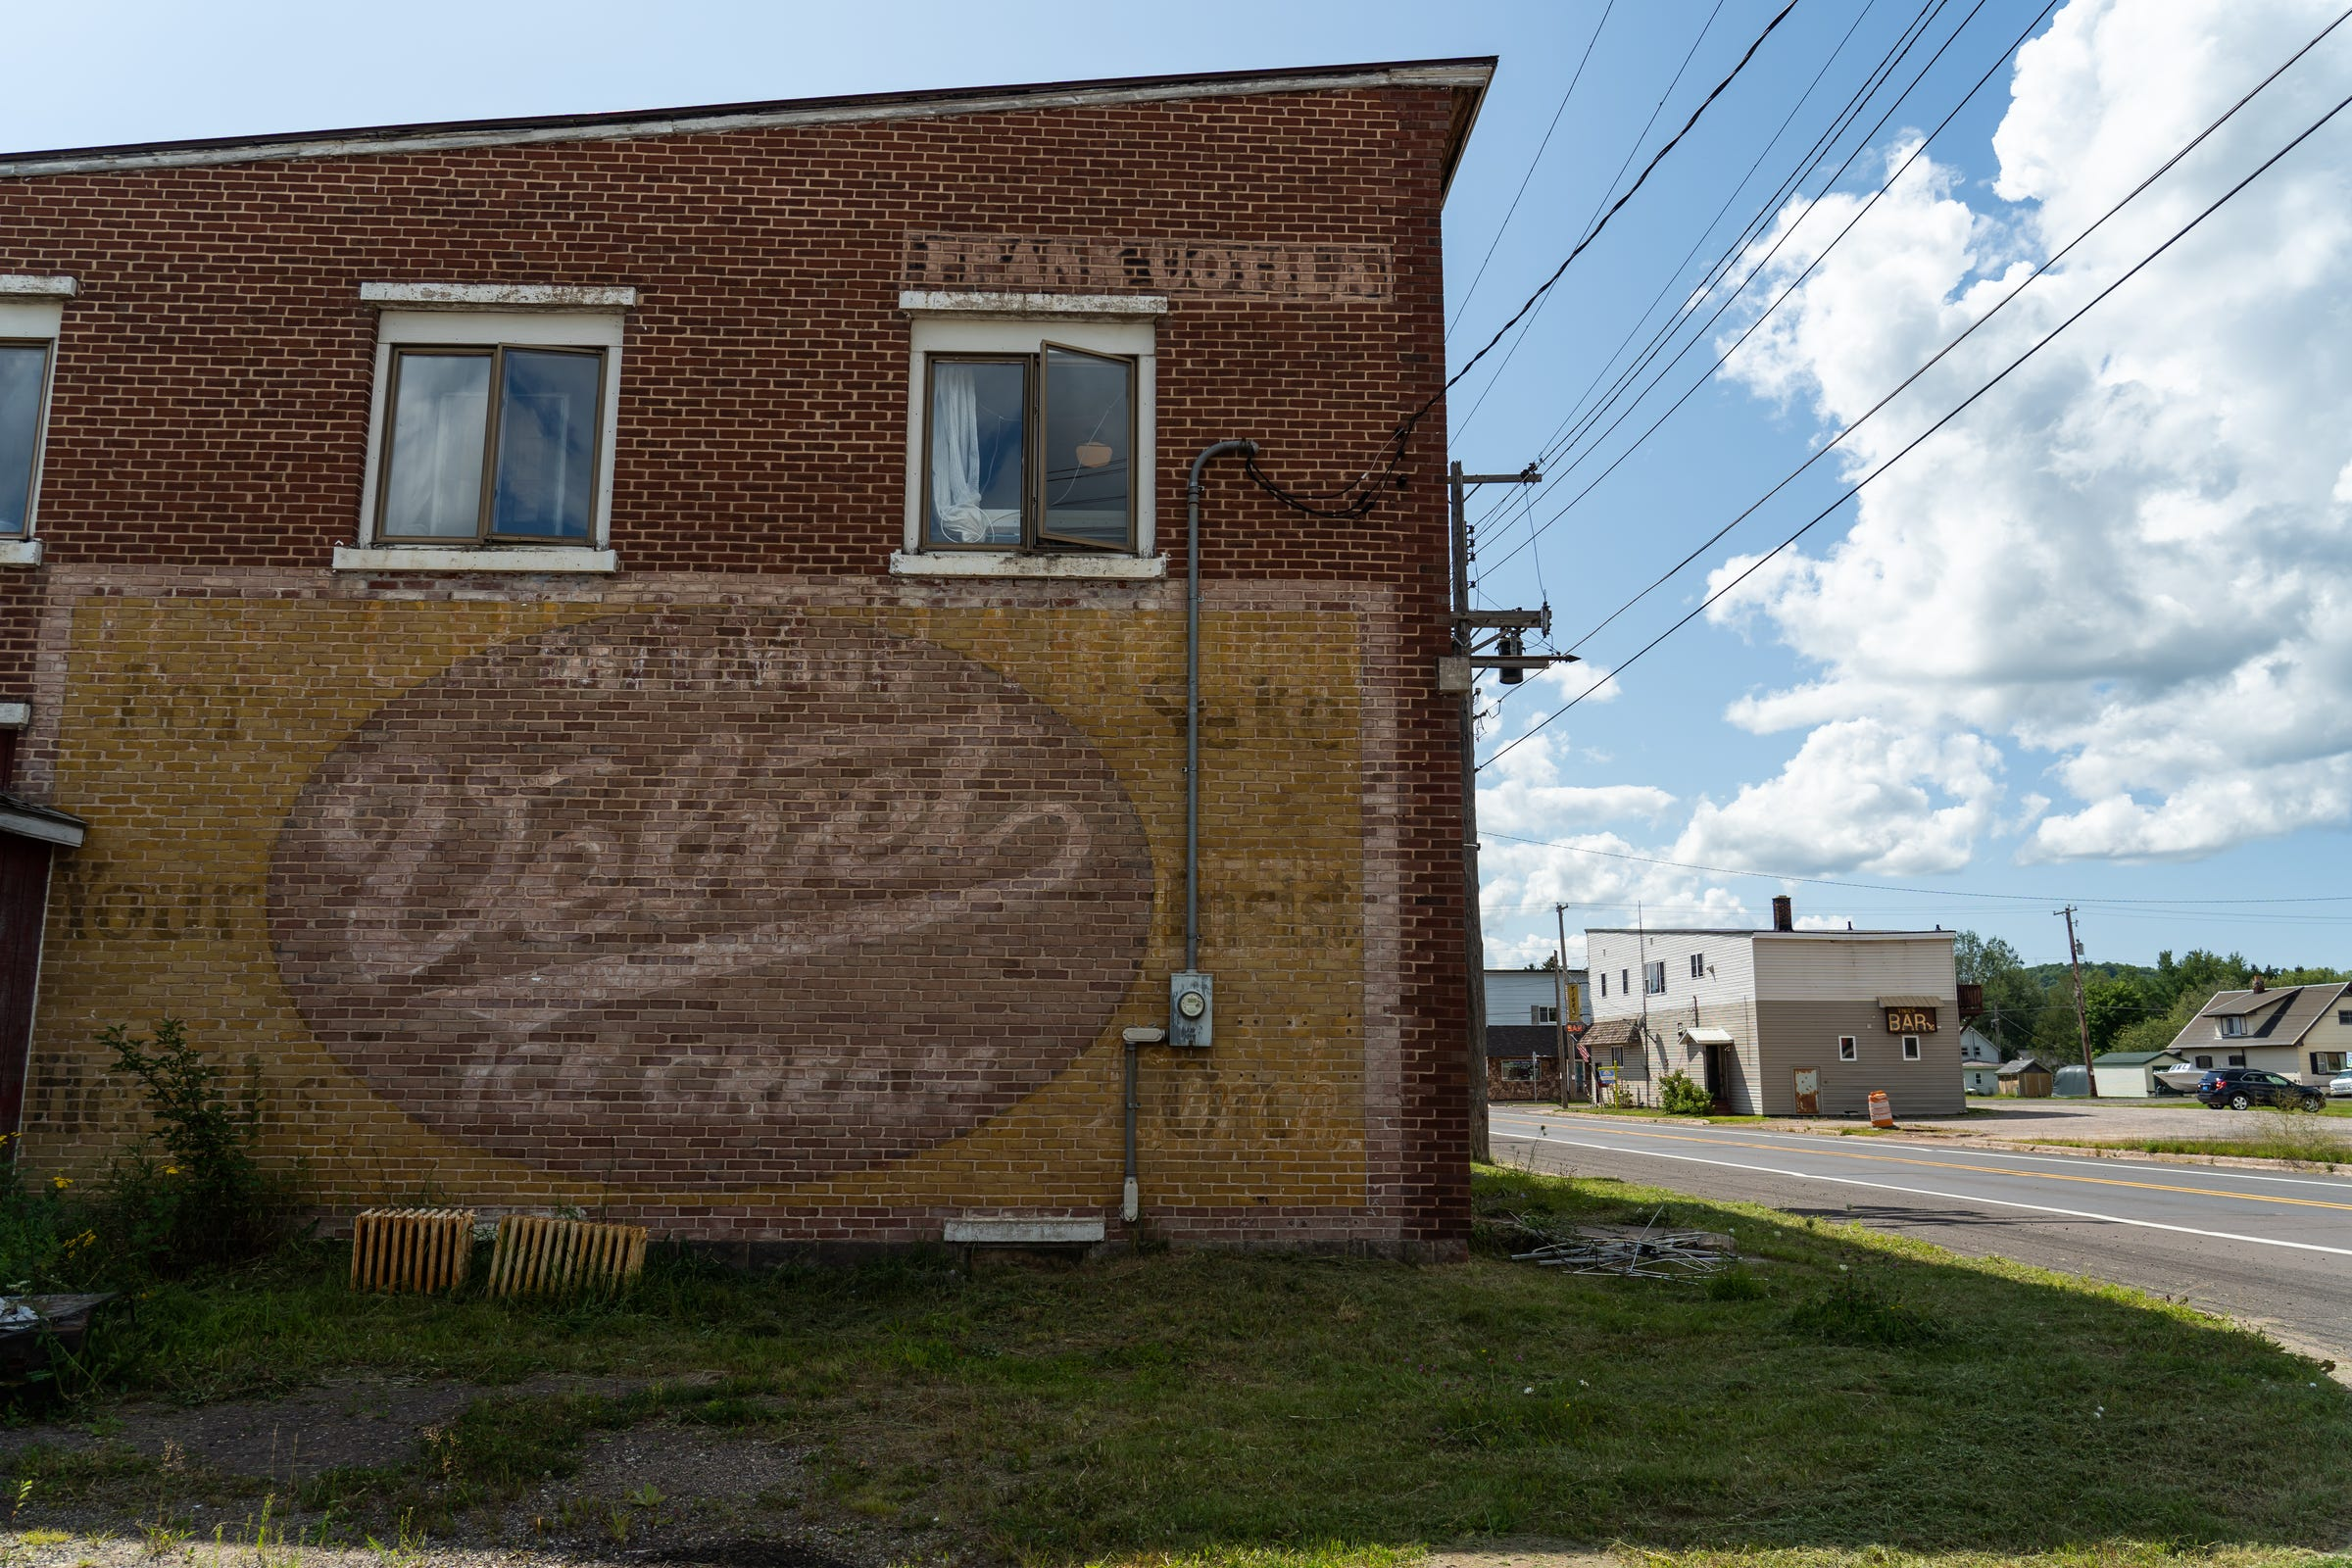 A ghost sign remains on the side of a building along M-26 in Mass City on Thursday, Aug. 15, 2019 in Michigan's Upper Peninsula.